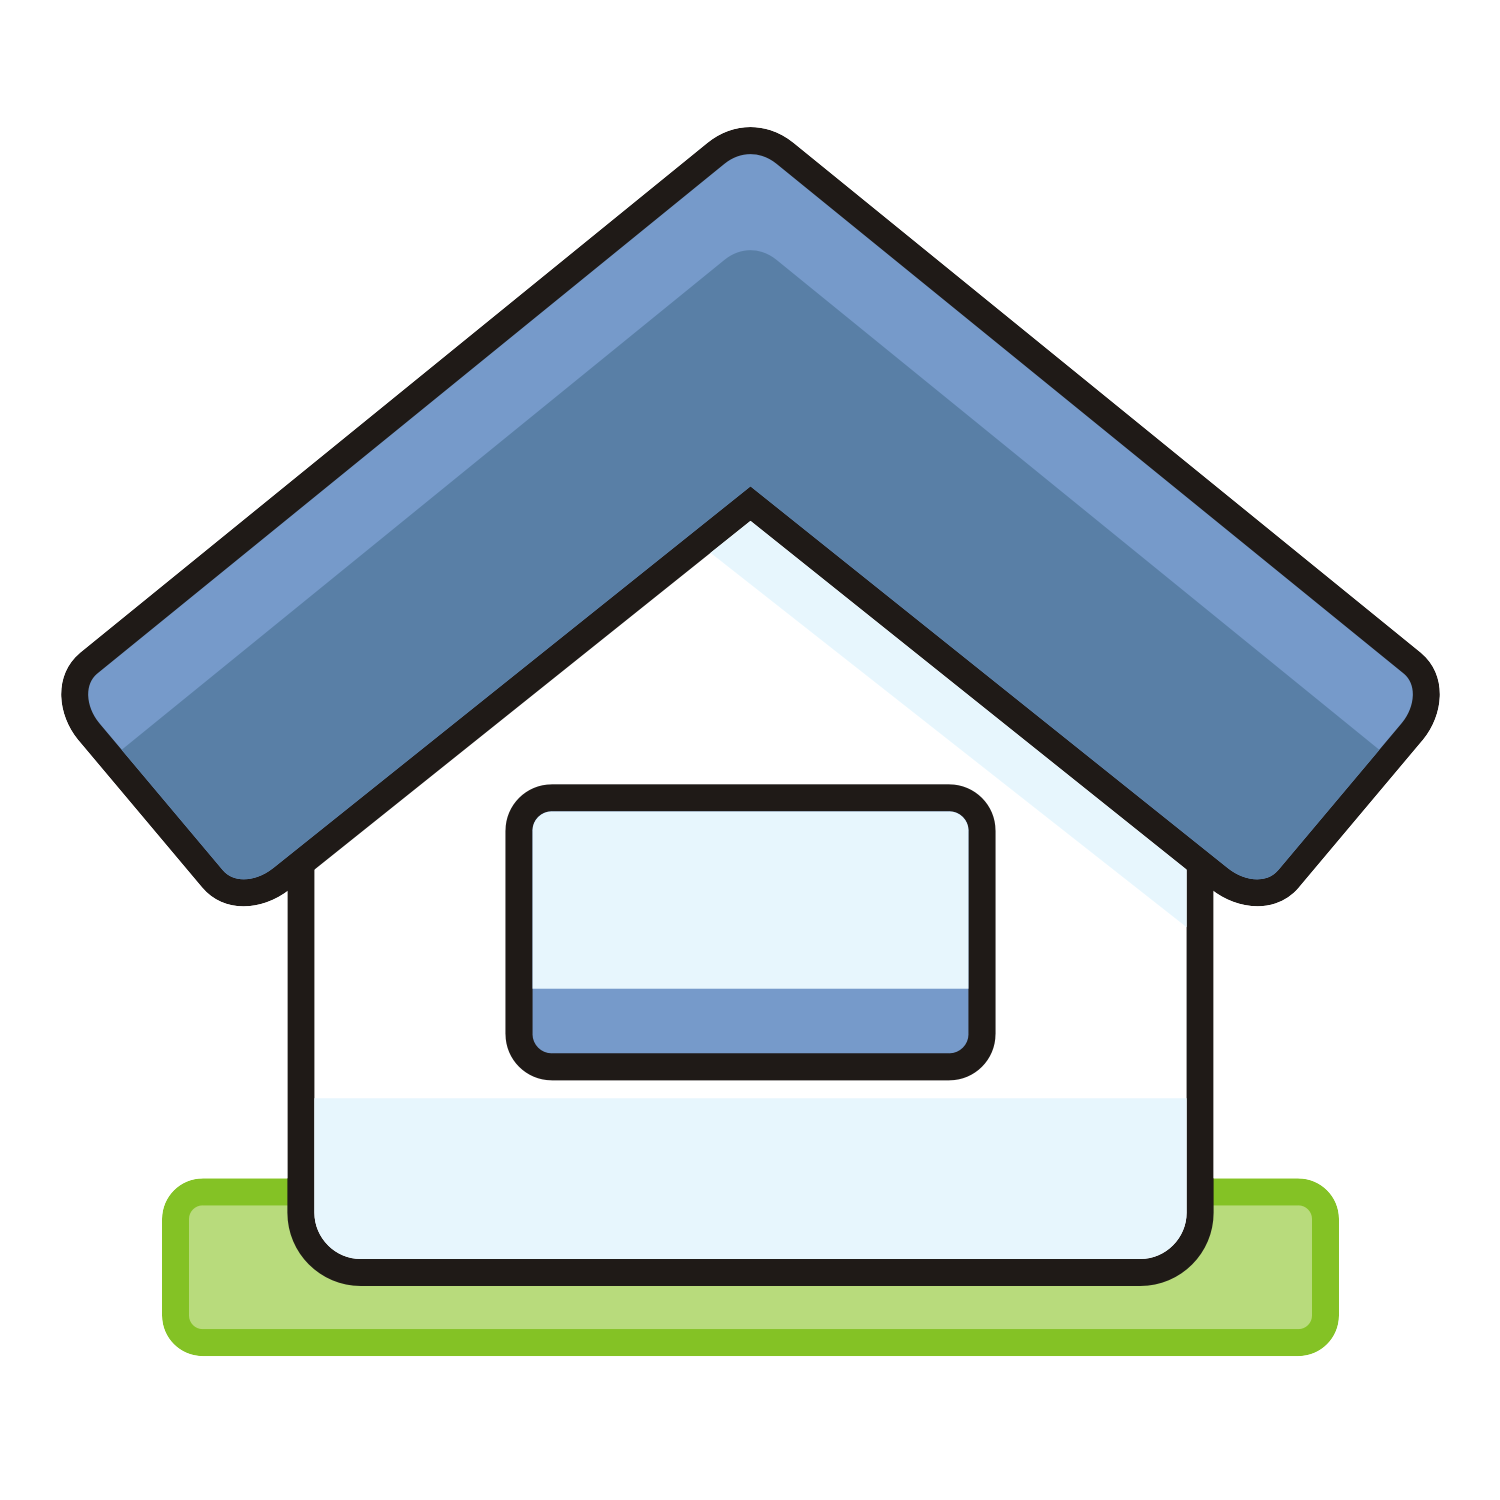 Vector for free use: Vector icon of a house